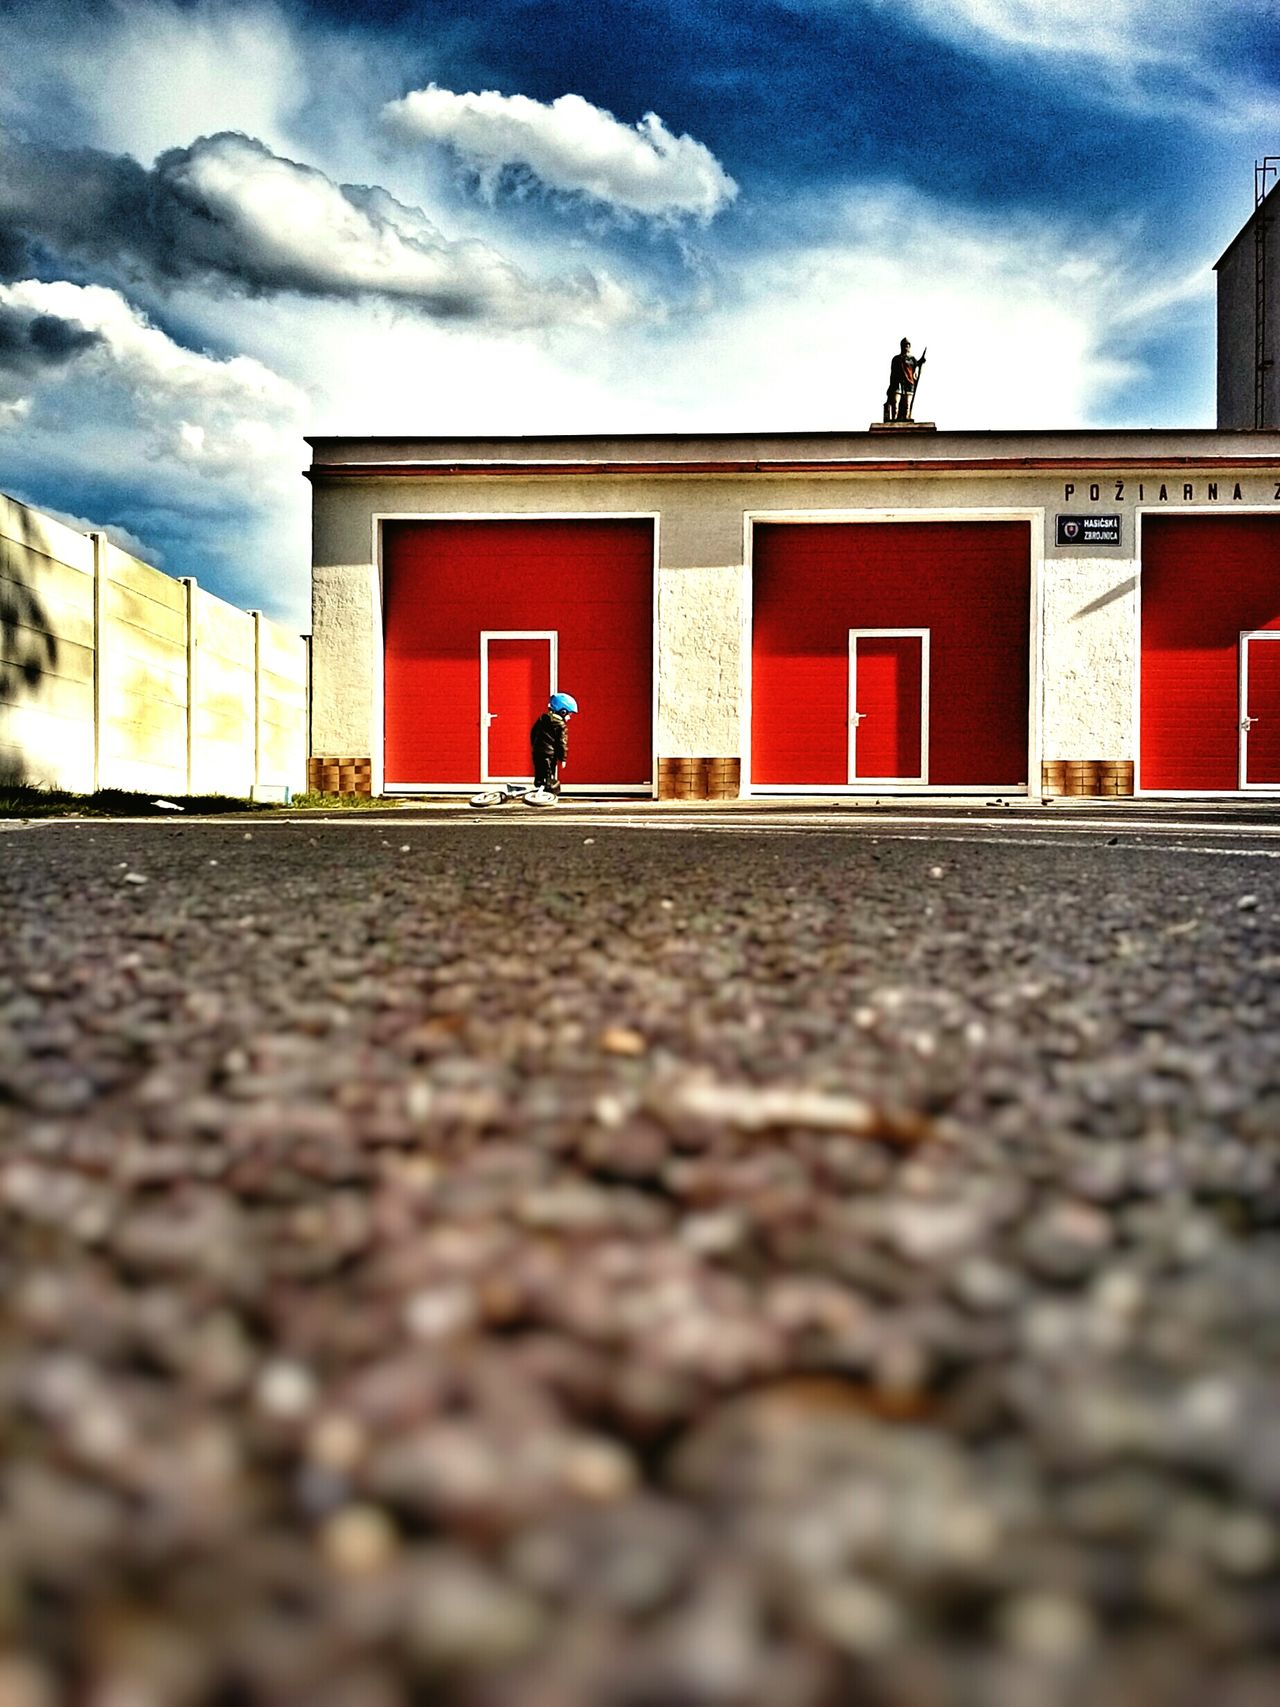 Here Belongs To Me Fire Station Red Gate Saint Florent Statue Patron Boy Blue Helmet Kids Sports Red Door Sky And Clouds Light And Shadow Slovakia Village Asphalt Concrete Wall